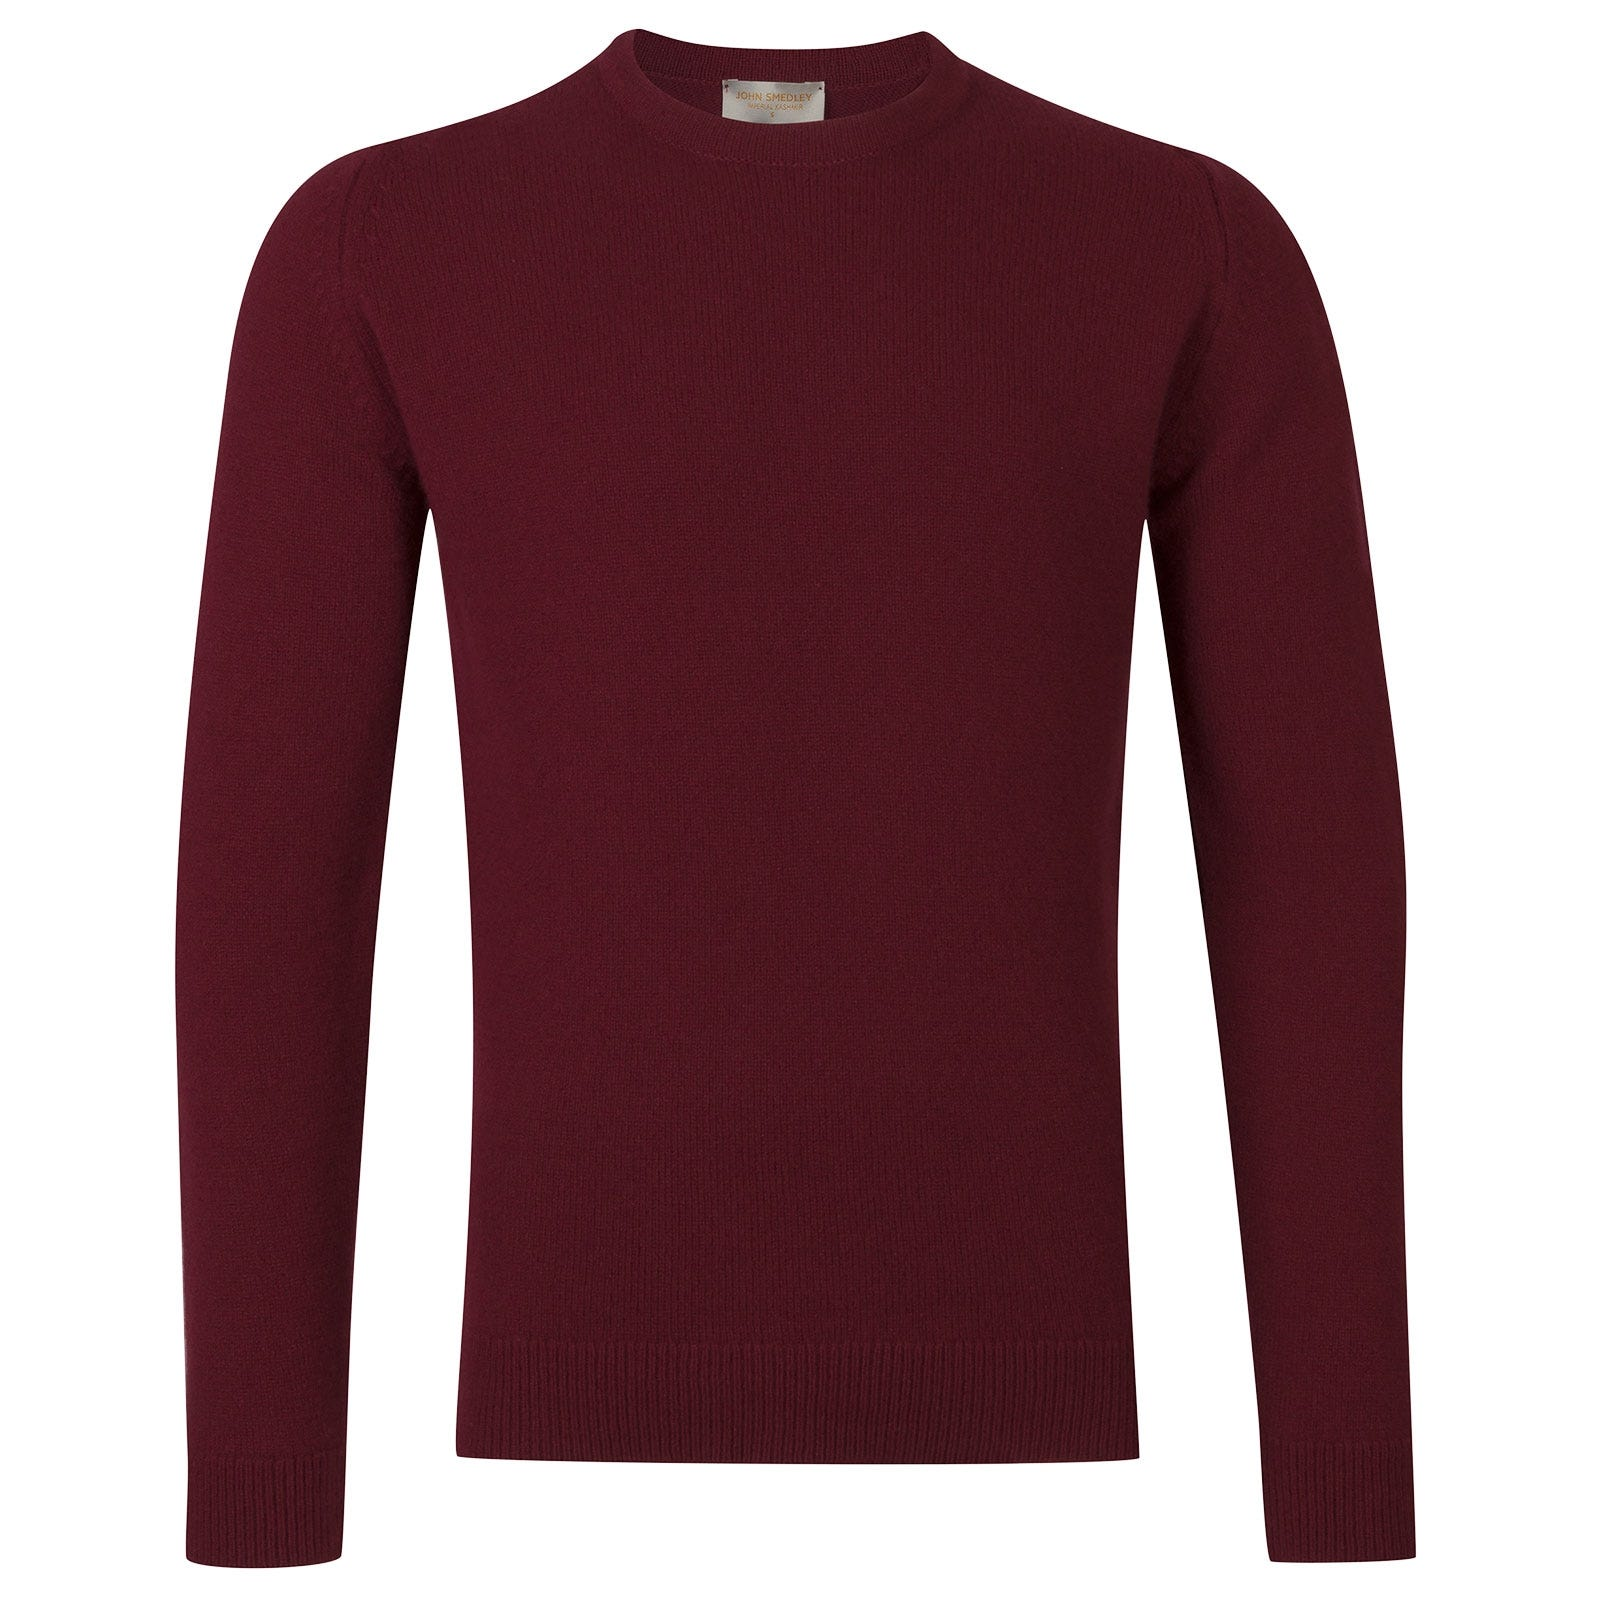 John Smedley Crowford Wool and Cashmere Pullover in Bordeaux-XXL